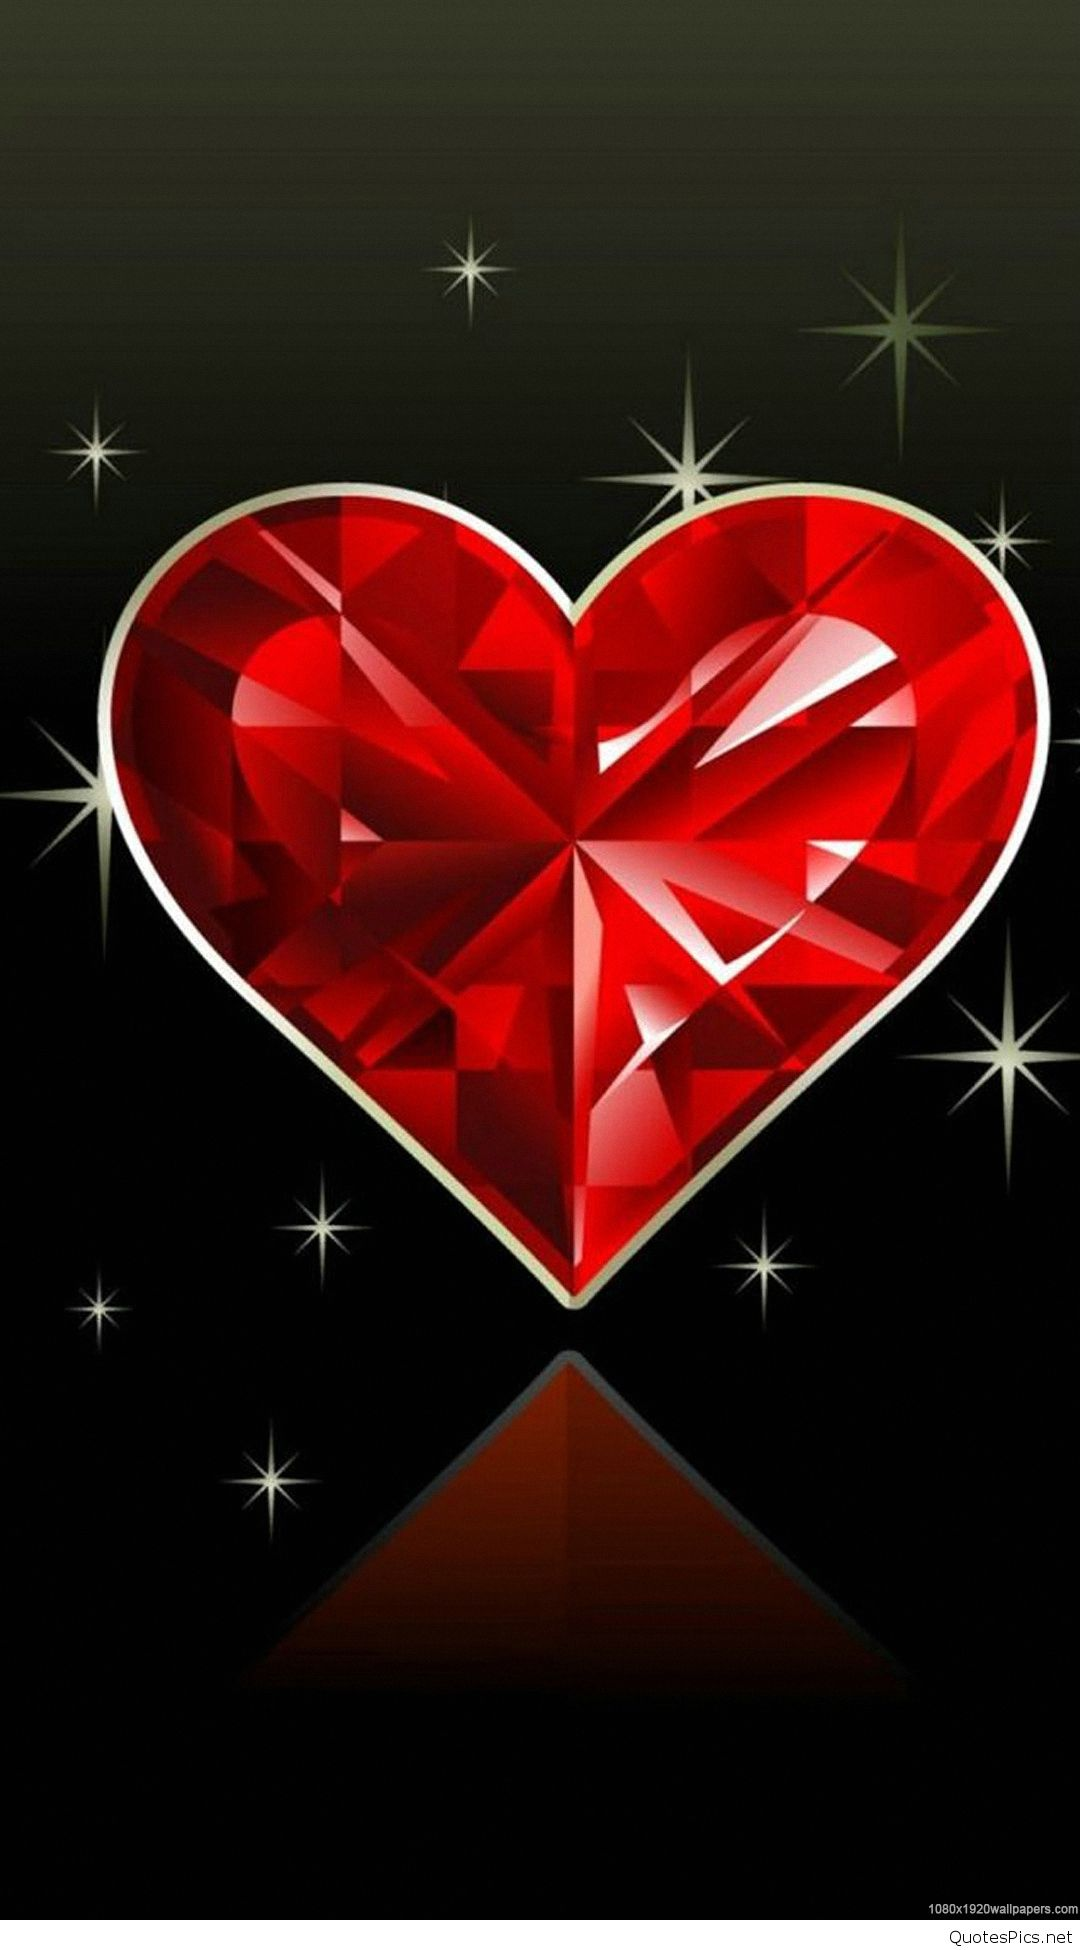 Heart Wallpaper HD For Mobile